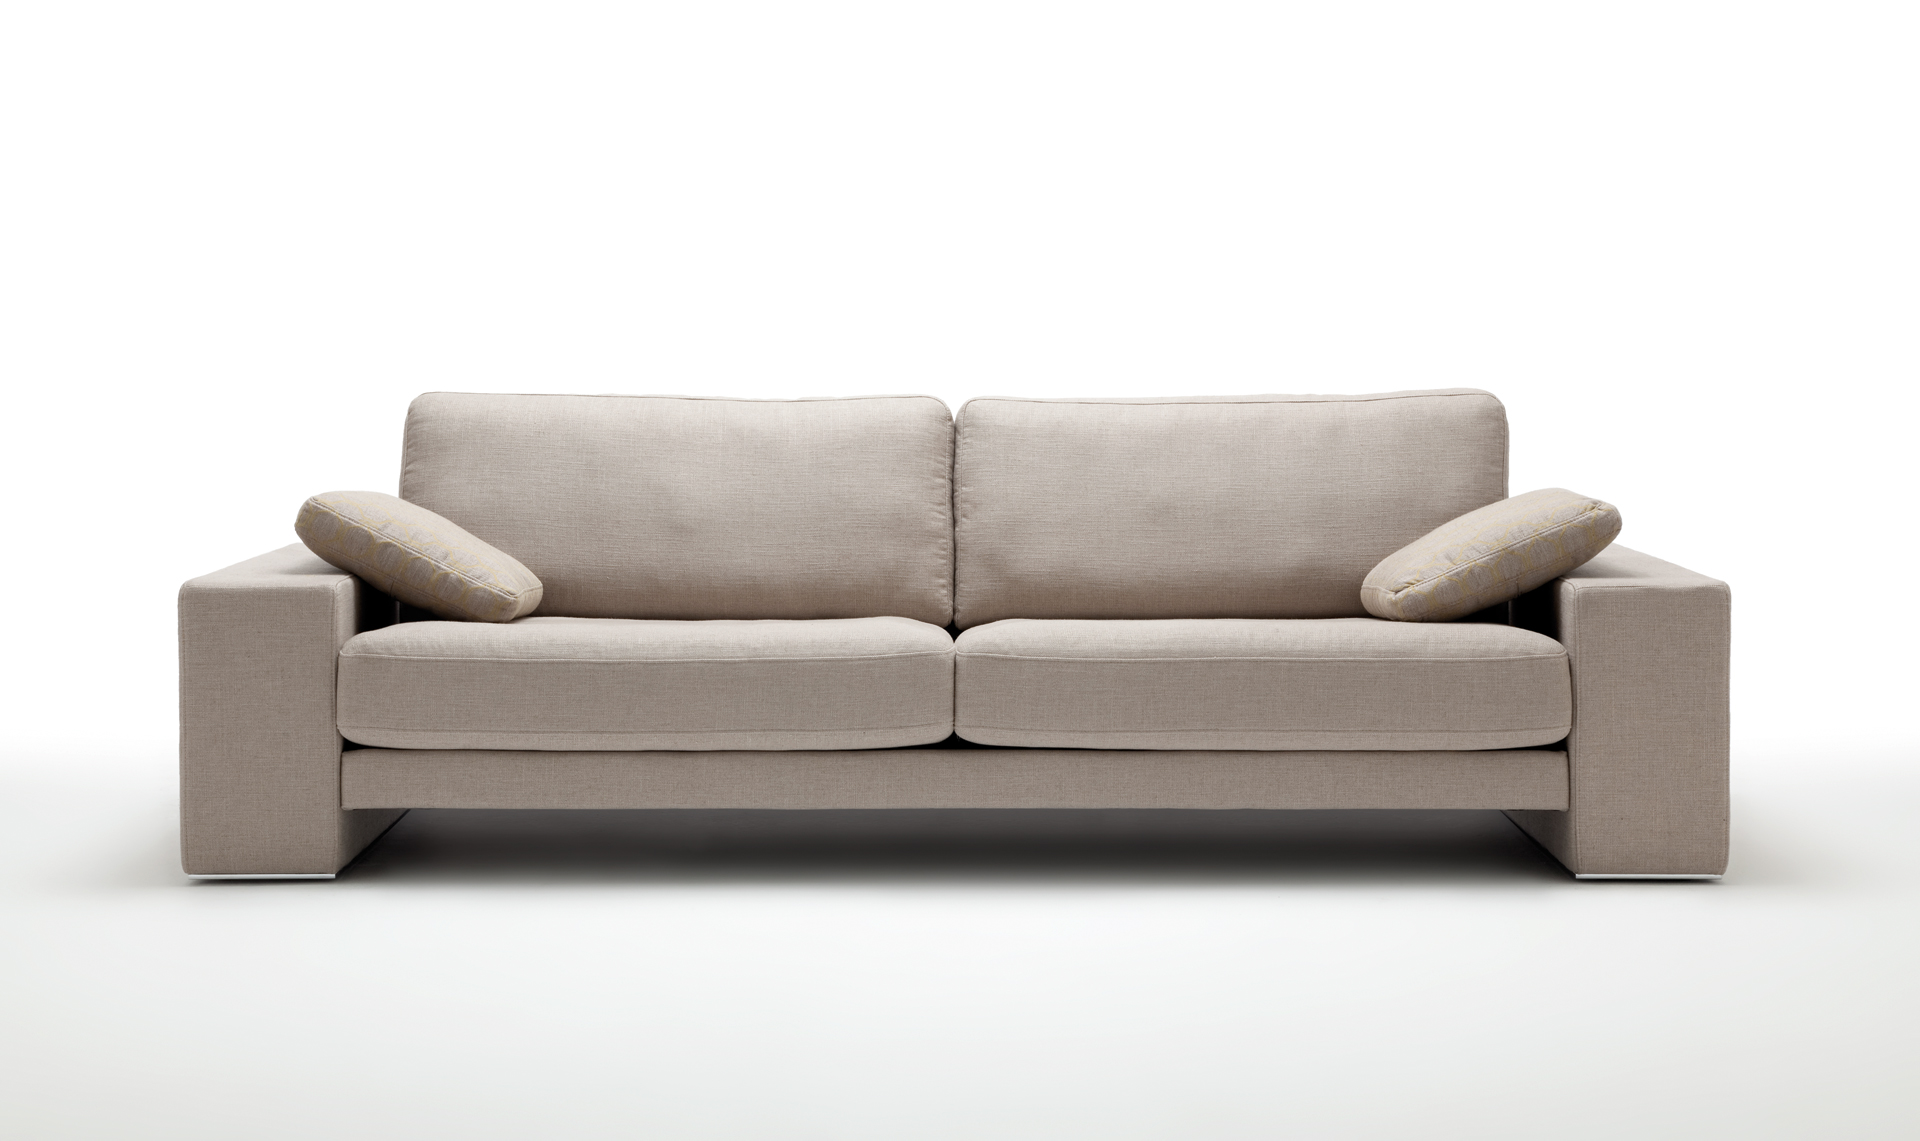 Rolf Benz Sofa Ecksofa Rolf Benz Wohnwand Great Sofas With Rolf Benz Sofa With Rolf Benz